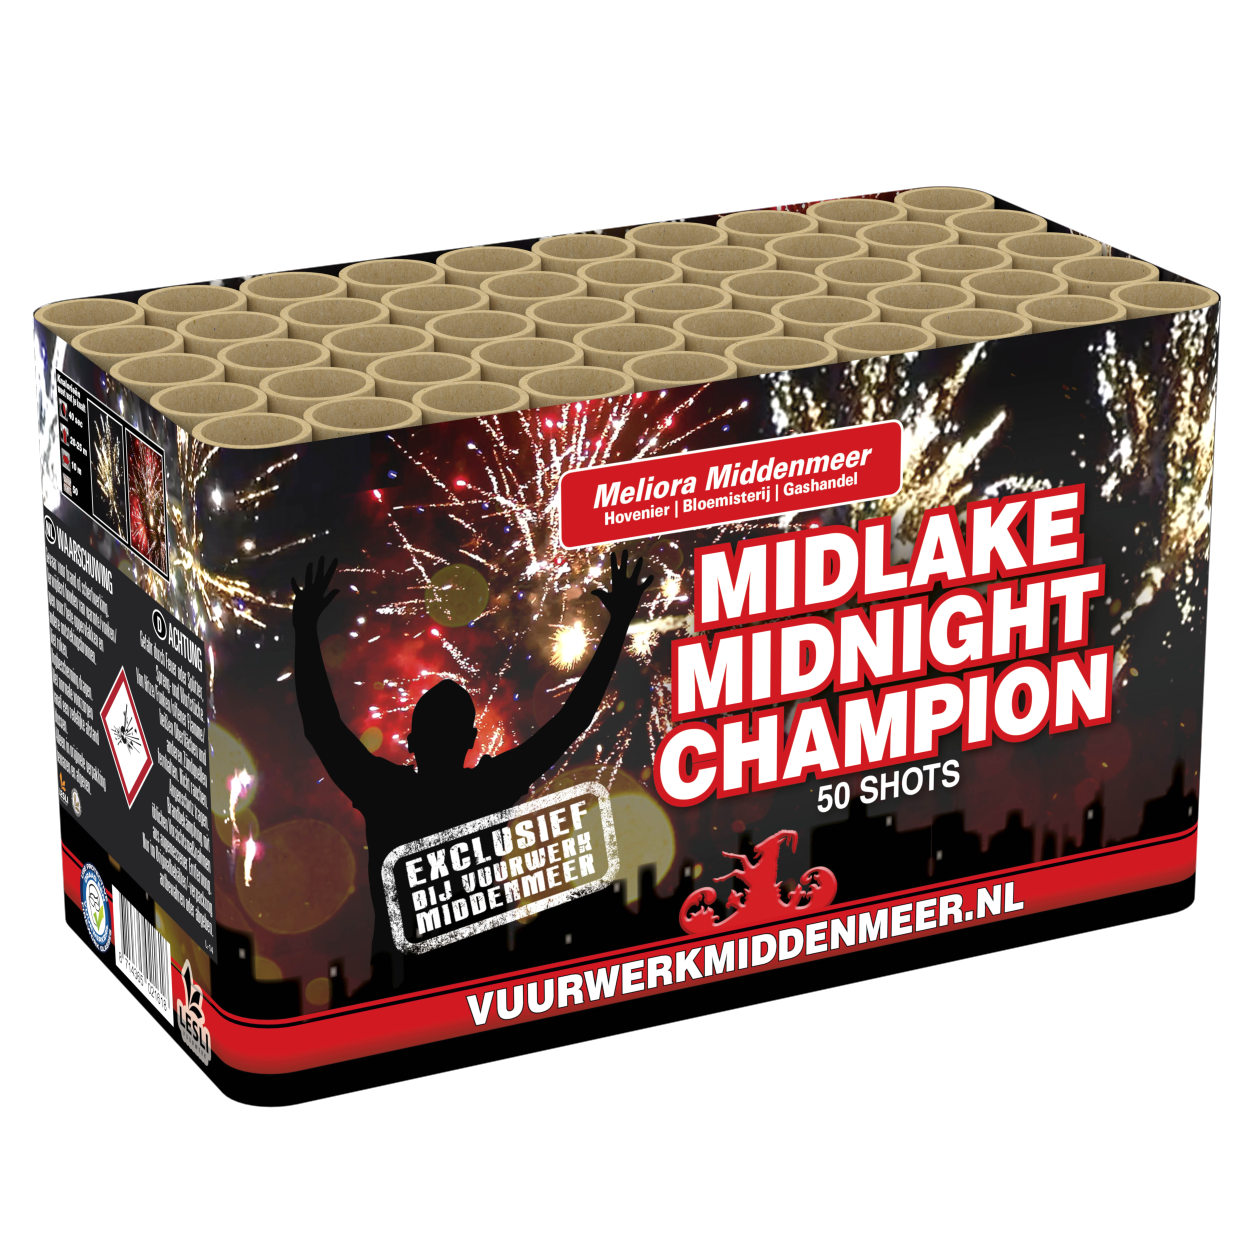 Midlake Midnight champion